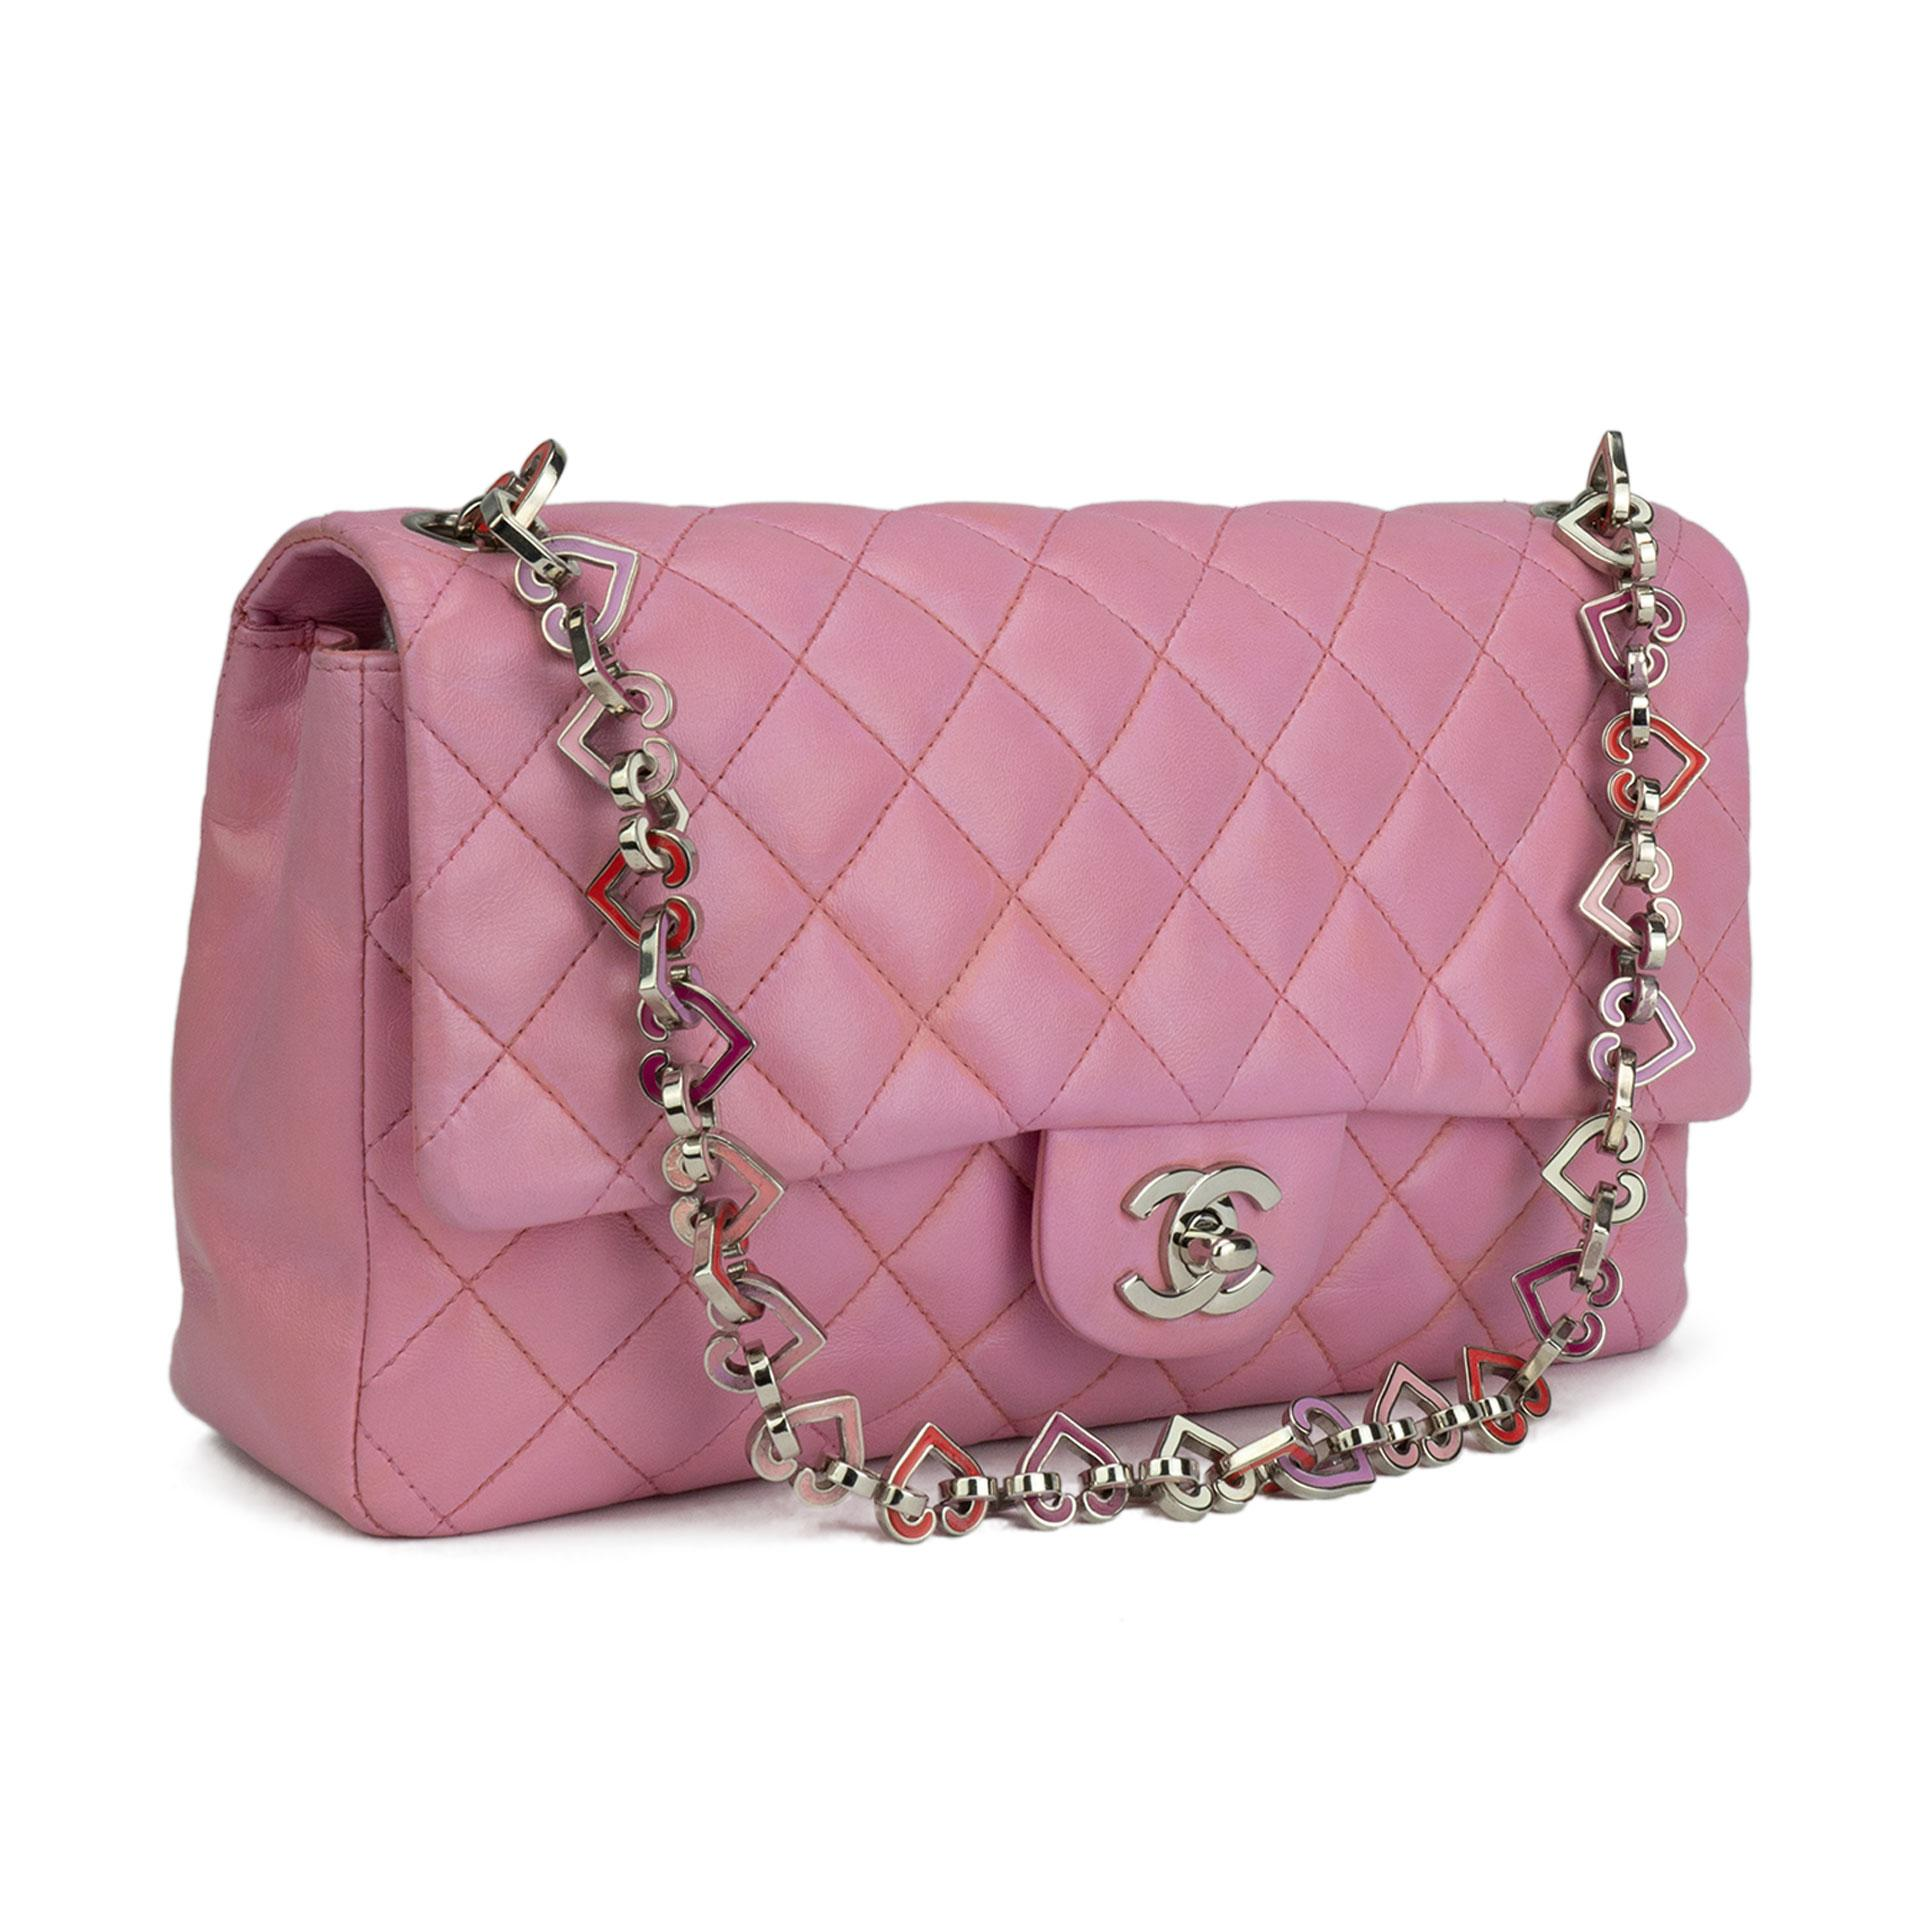 6dde5fabed3be3 Chanel Limited Edition Valentines Rare Heart Charm Pink Classic Flap at  1stdibs